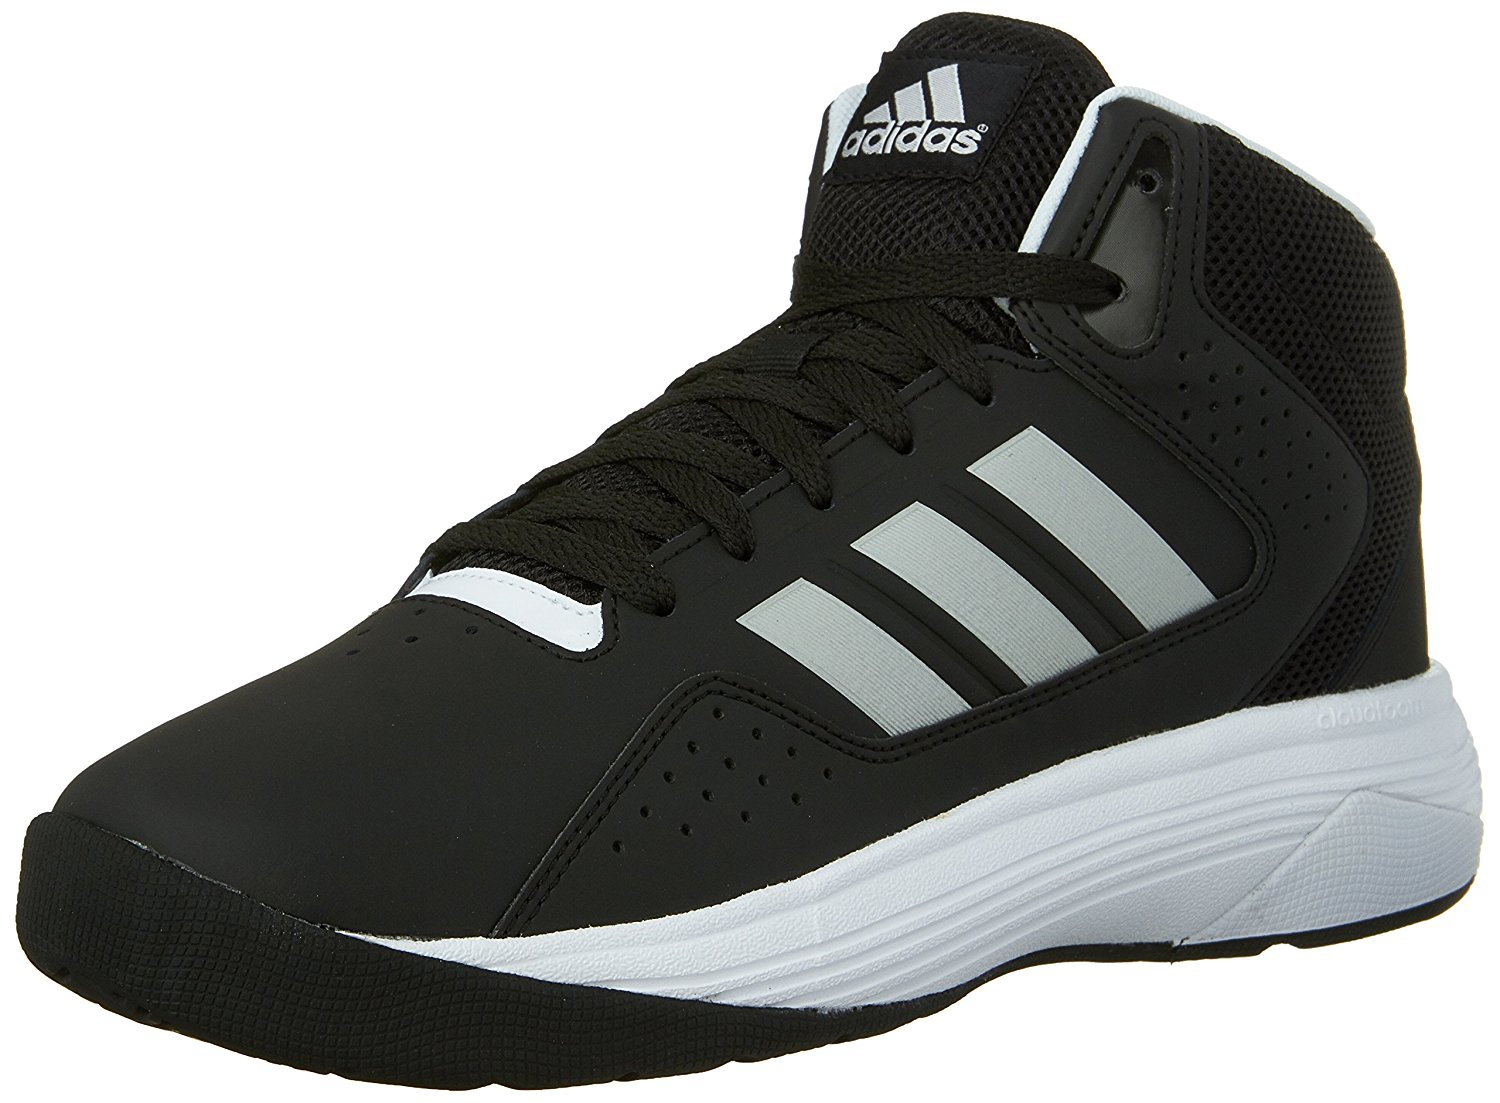 Adidas Cloudfoam Ilation Reviewed for